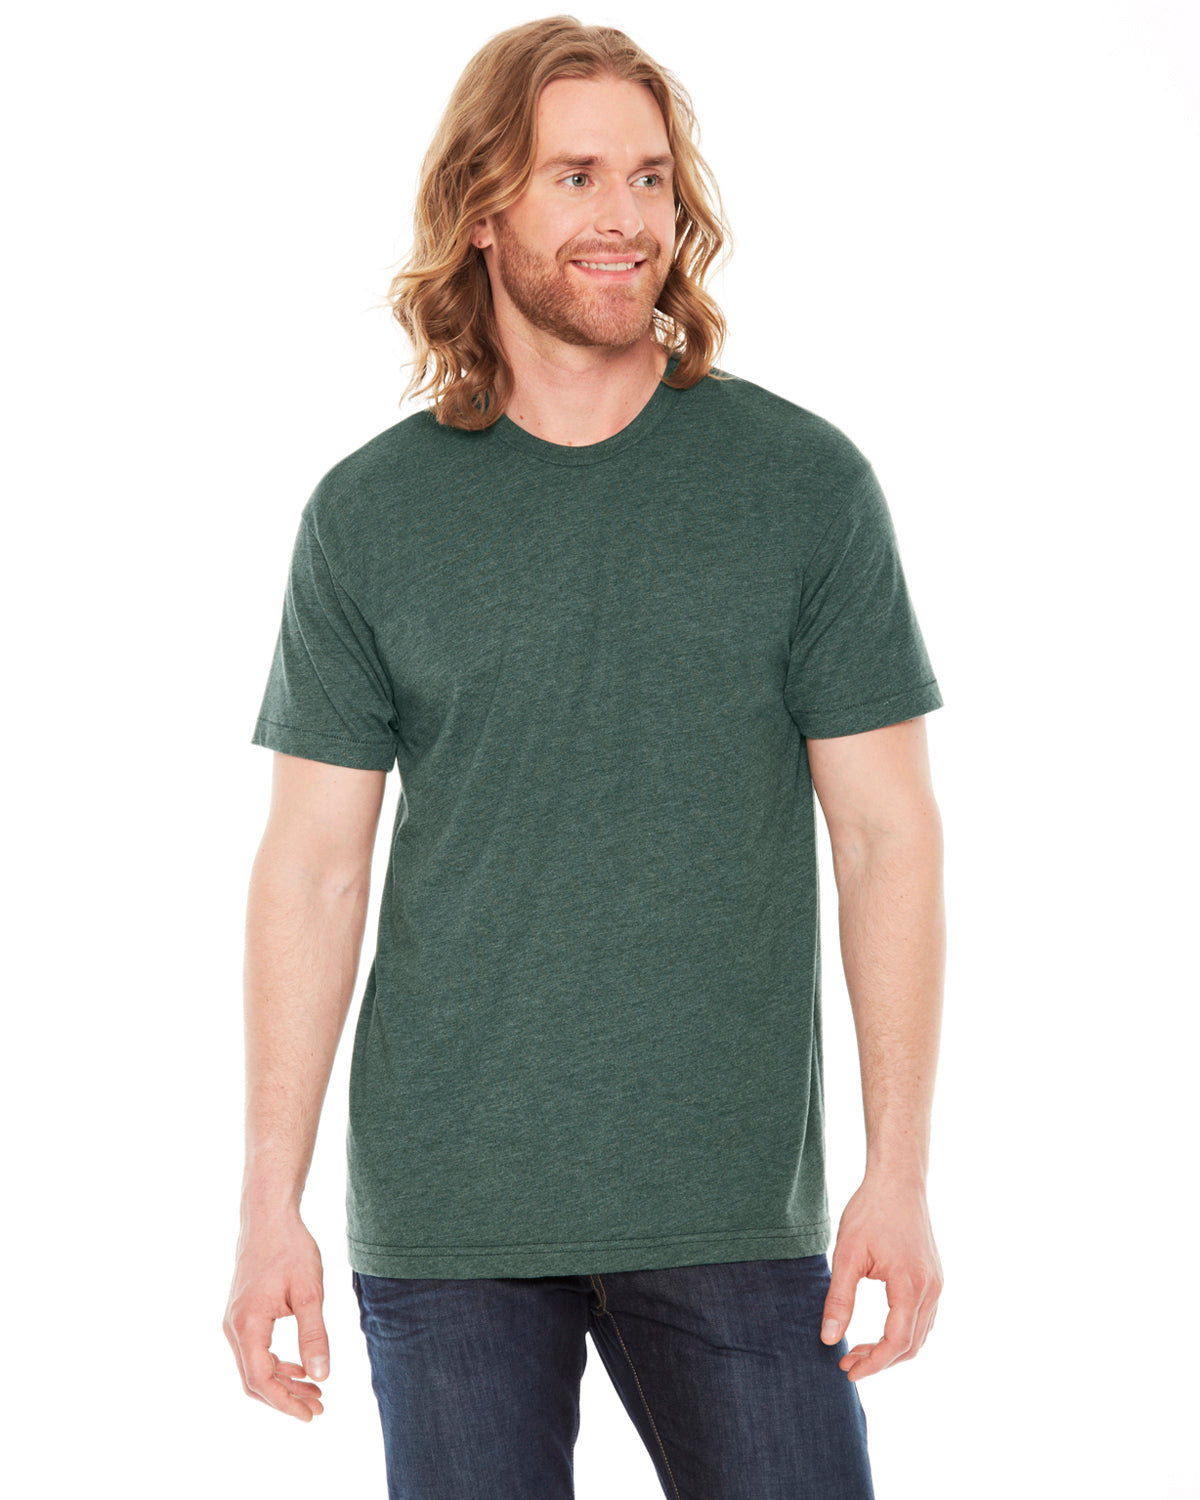 7fe276eda4 AMERICAN APPAREL UNISEX POLY COTTON SHORT SLEEVE CREW NECK T-SHIRT